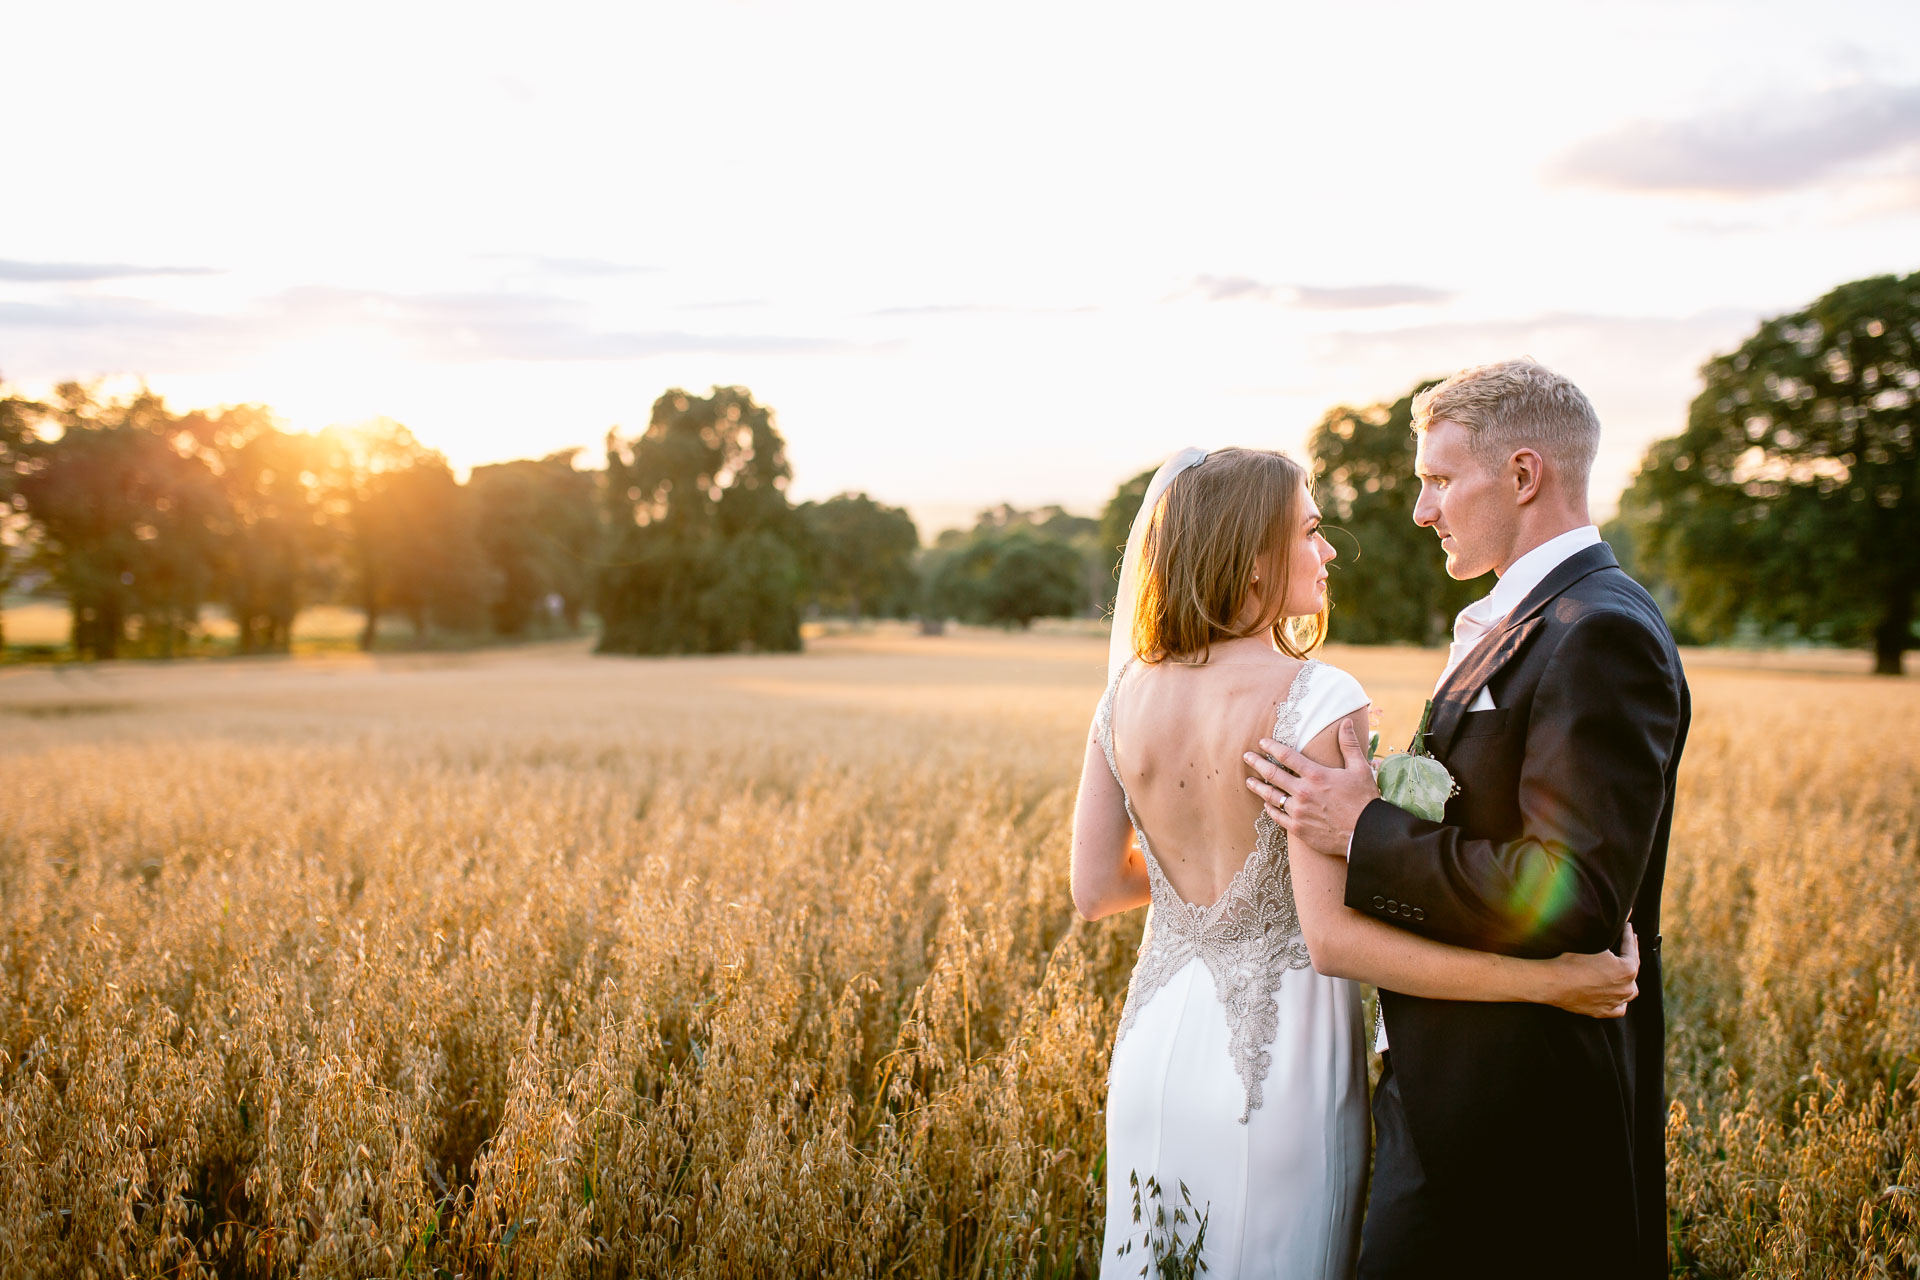 The Citadel wedding Shropshire Sarah-Jane and Steve bride and groom standing in the fields go gold in the sunset looking at each other